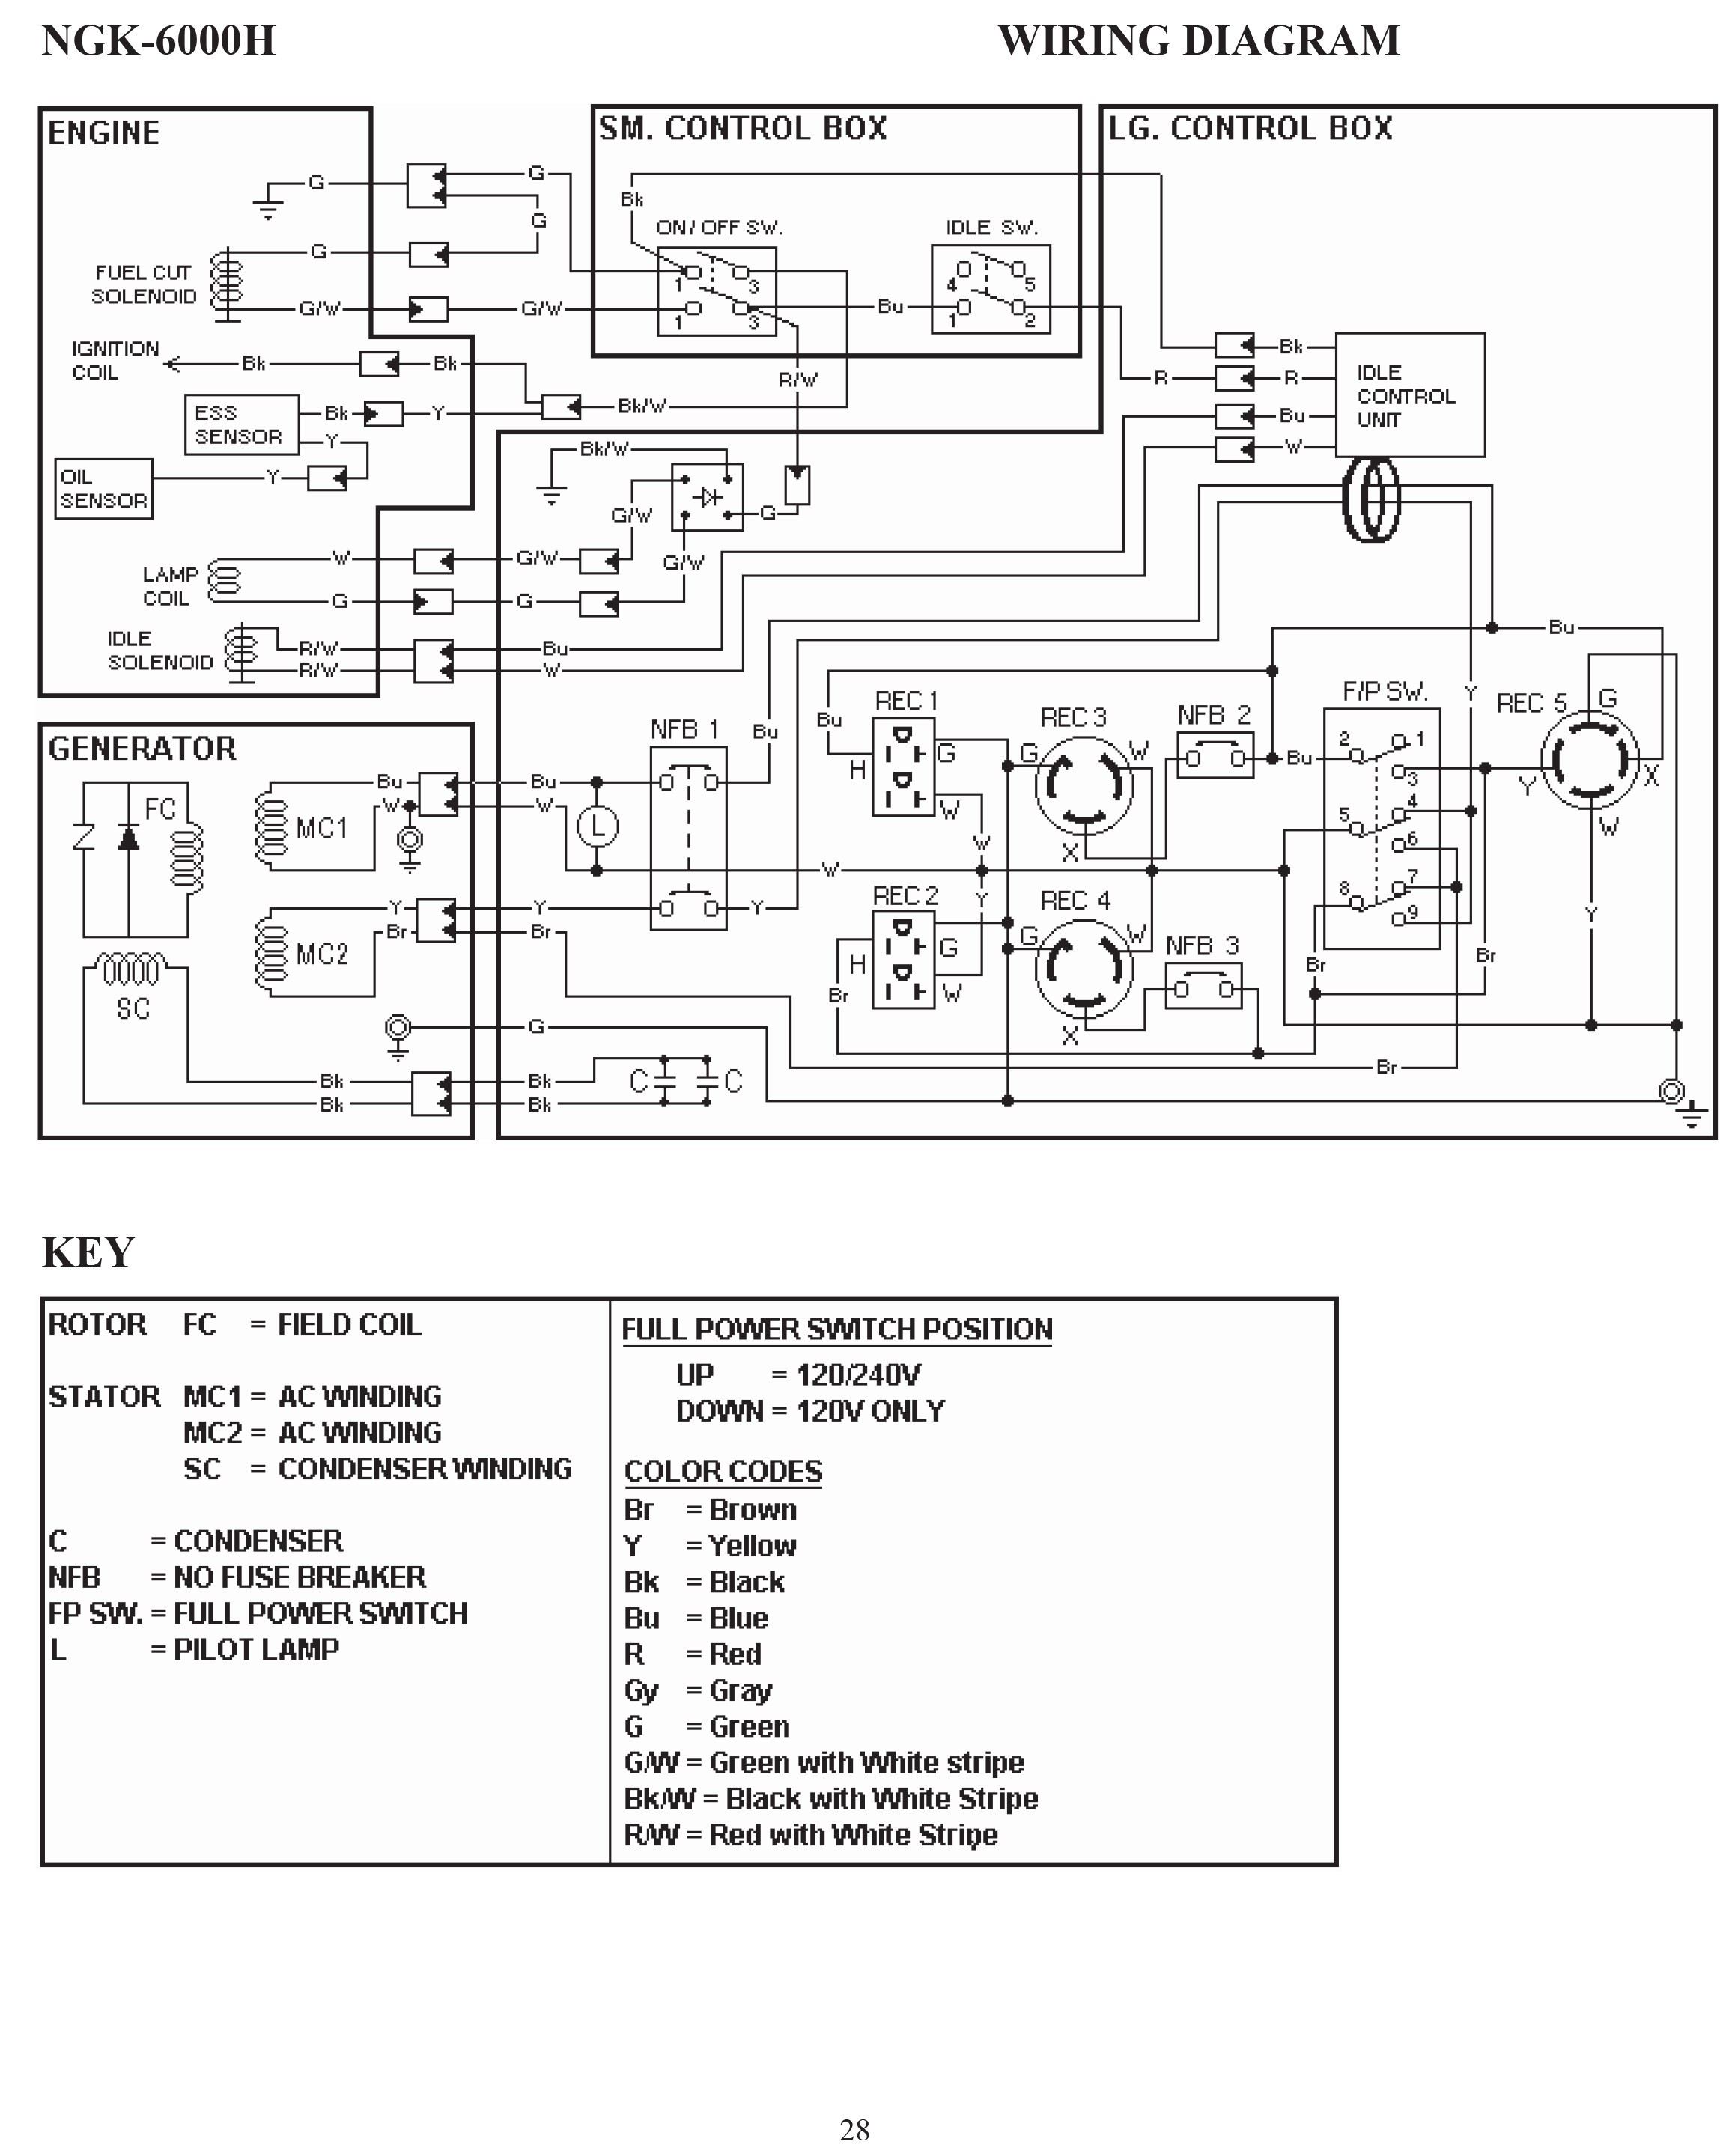 Us Motors Wiring Diagram - Wiring Diagram Mega on electric motor wiring diagrams, motor overload wiring diagrams, capacitor start motor diagrams, single phase capacitor motor diagrams, motor run capacitor wiring, induction motor wiring diagrams, motor starter wiring diagrams, baldor ac motor diagrams, single phase motor wiring diagrams, dayton capacitor start wiring diagrams, motor heater wiring diagrams, wound rotor motor wiring diagrams,